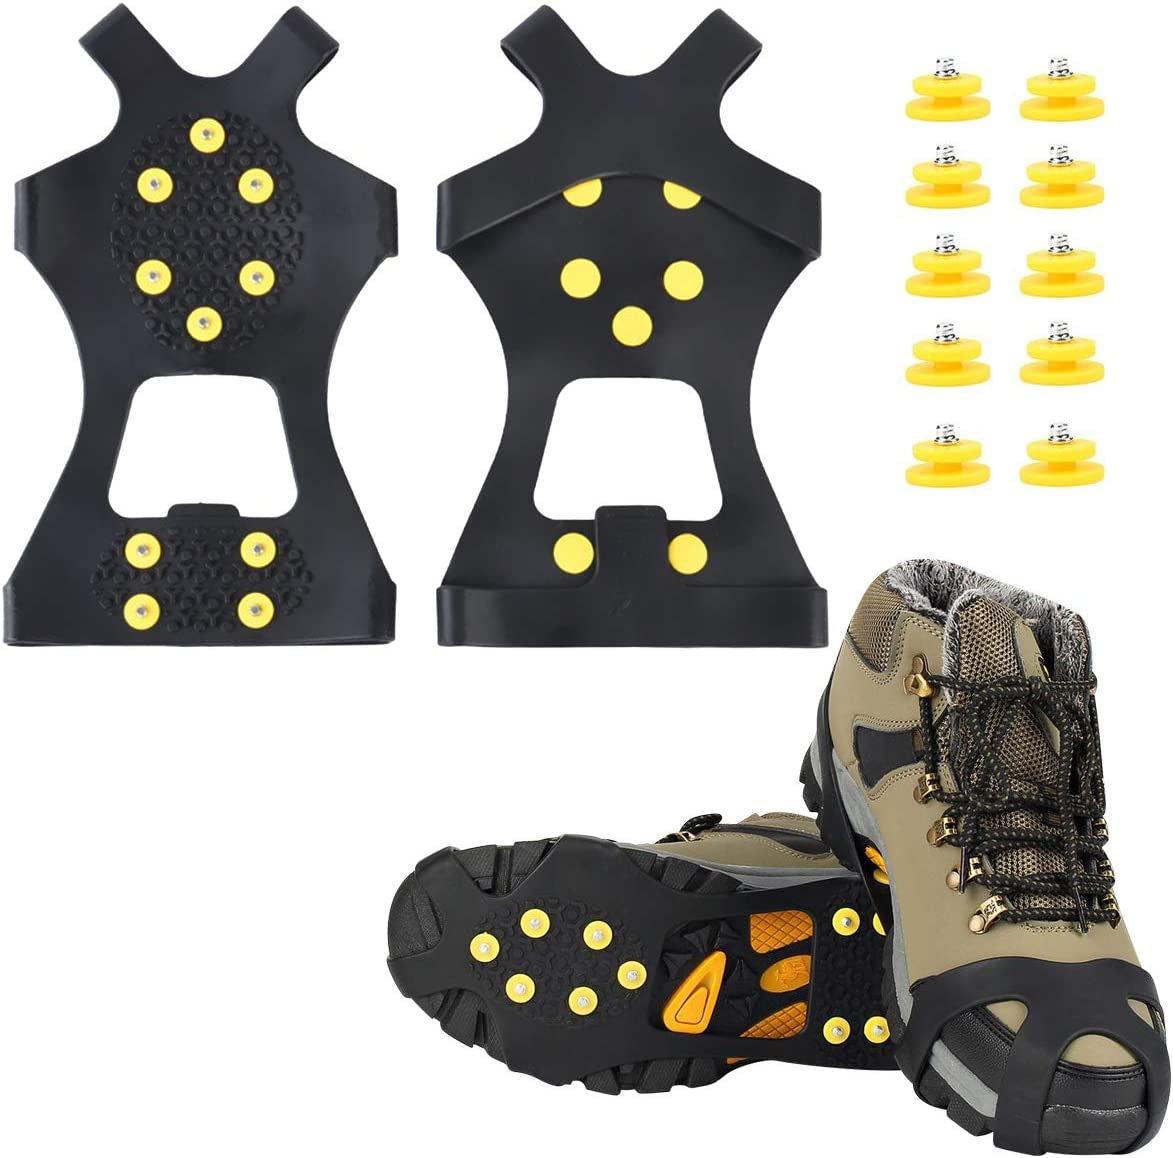 Homyl Unisex Anti-Slip Ice Cleats Shoes Boots Covers Grips Strap-On Heel Traction Aid Crampon Snow Spikes 1 Pair